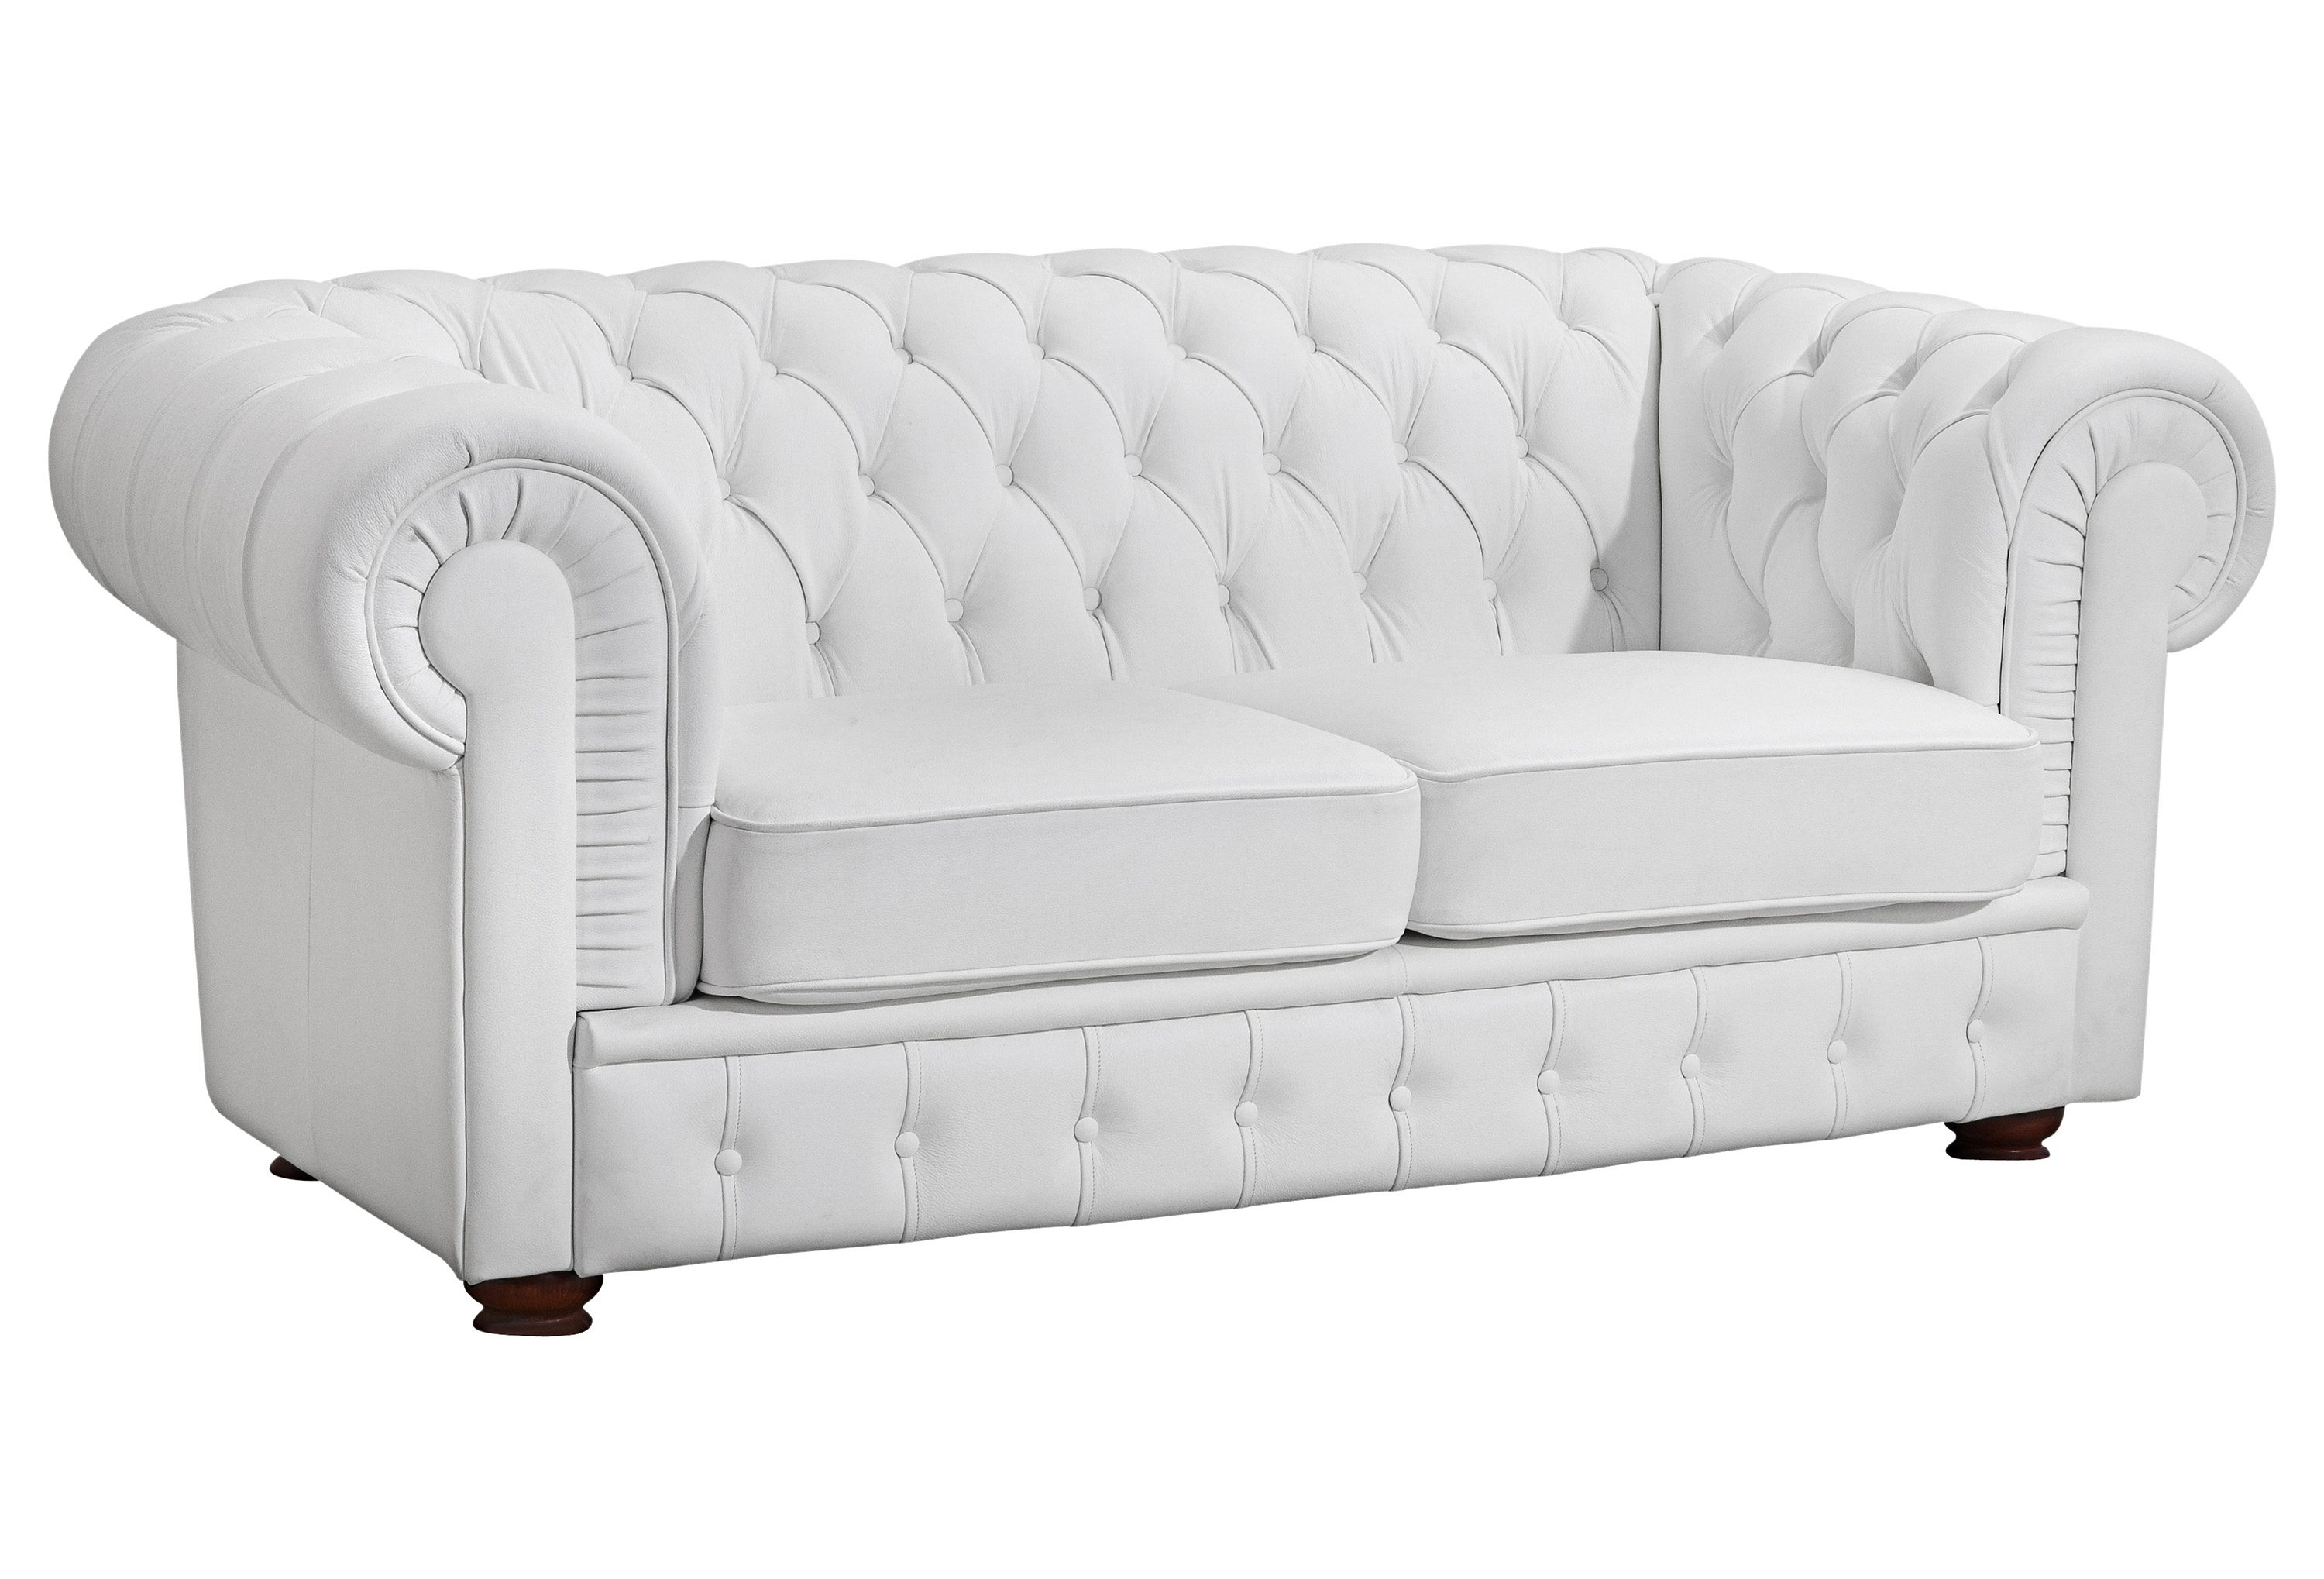 Moderne Chesterfield Banken : Chesterfield sofa kaufen chesterfield couch otto